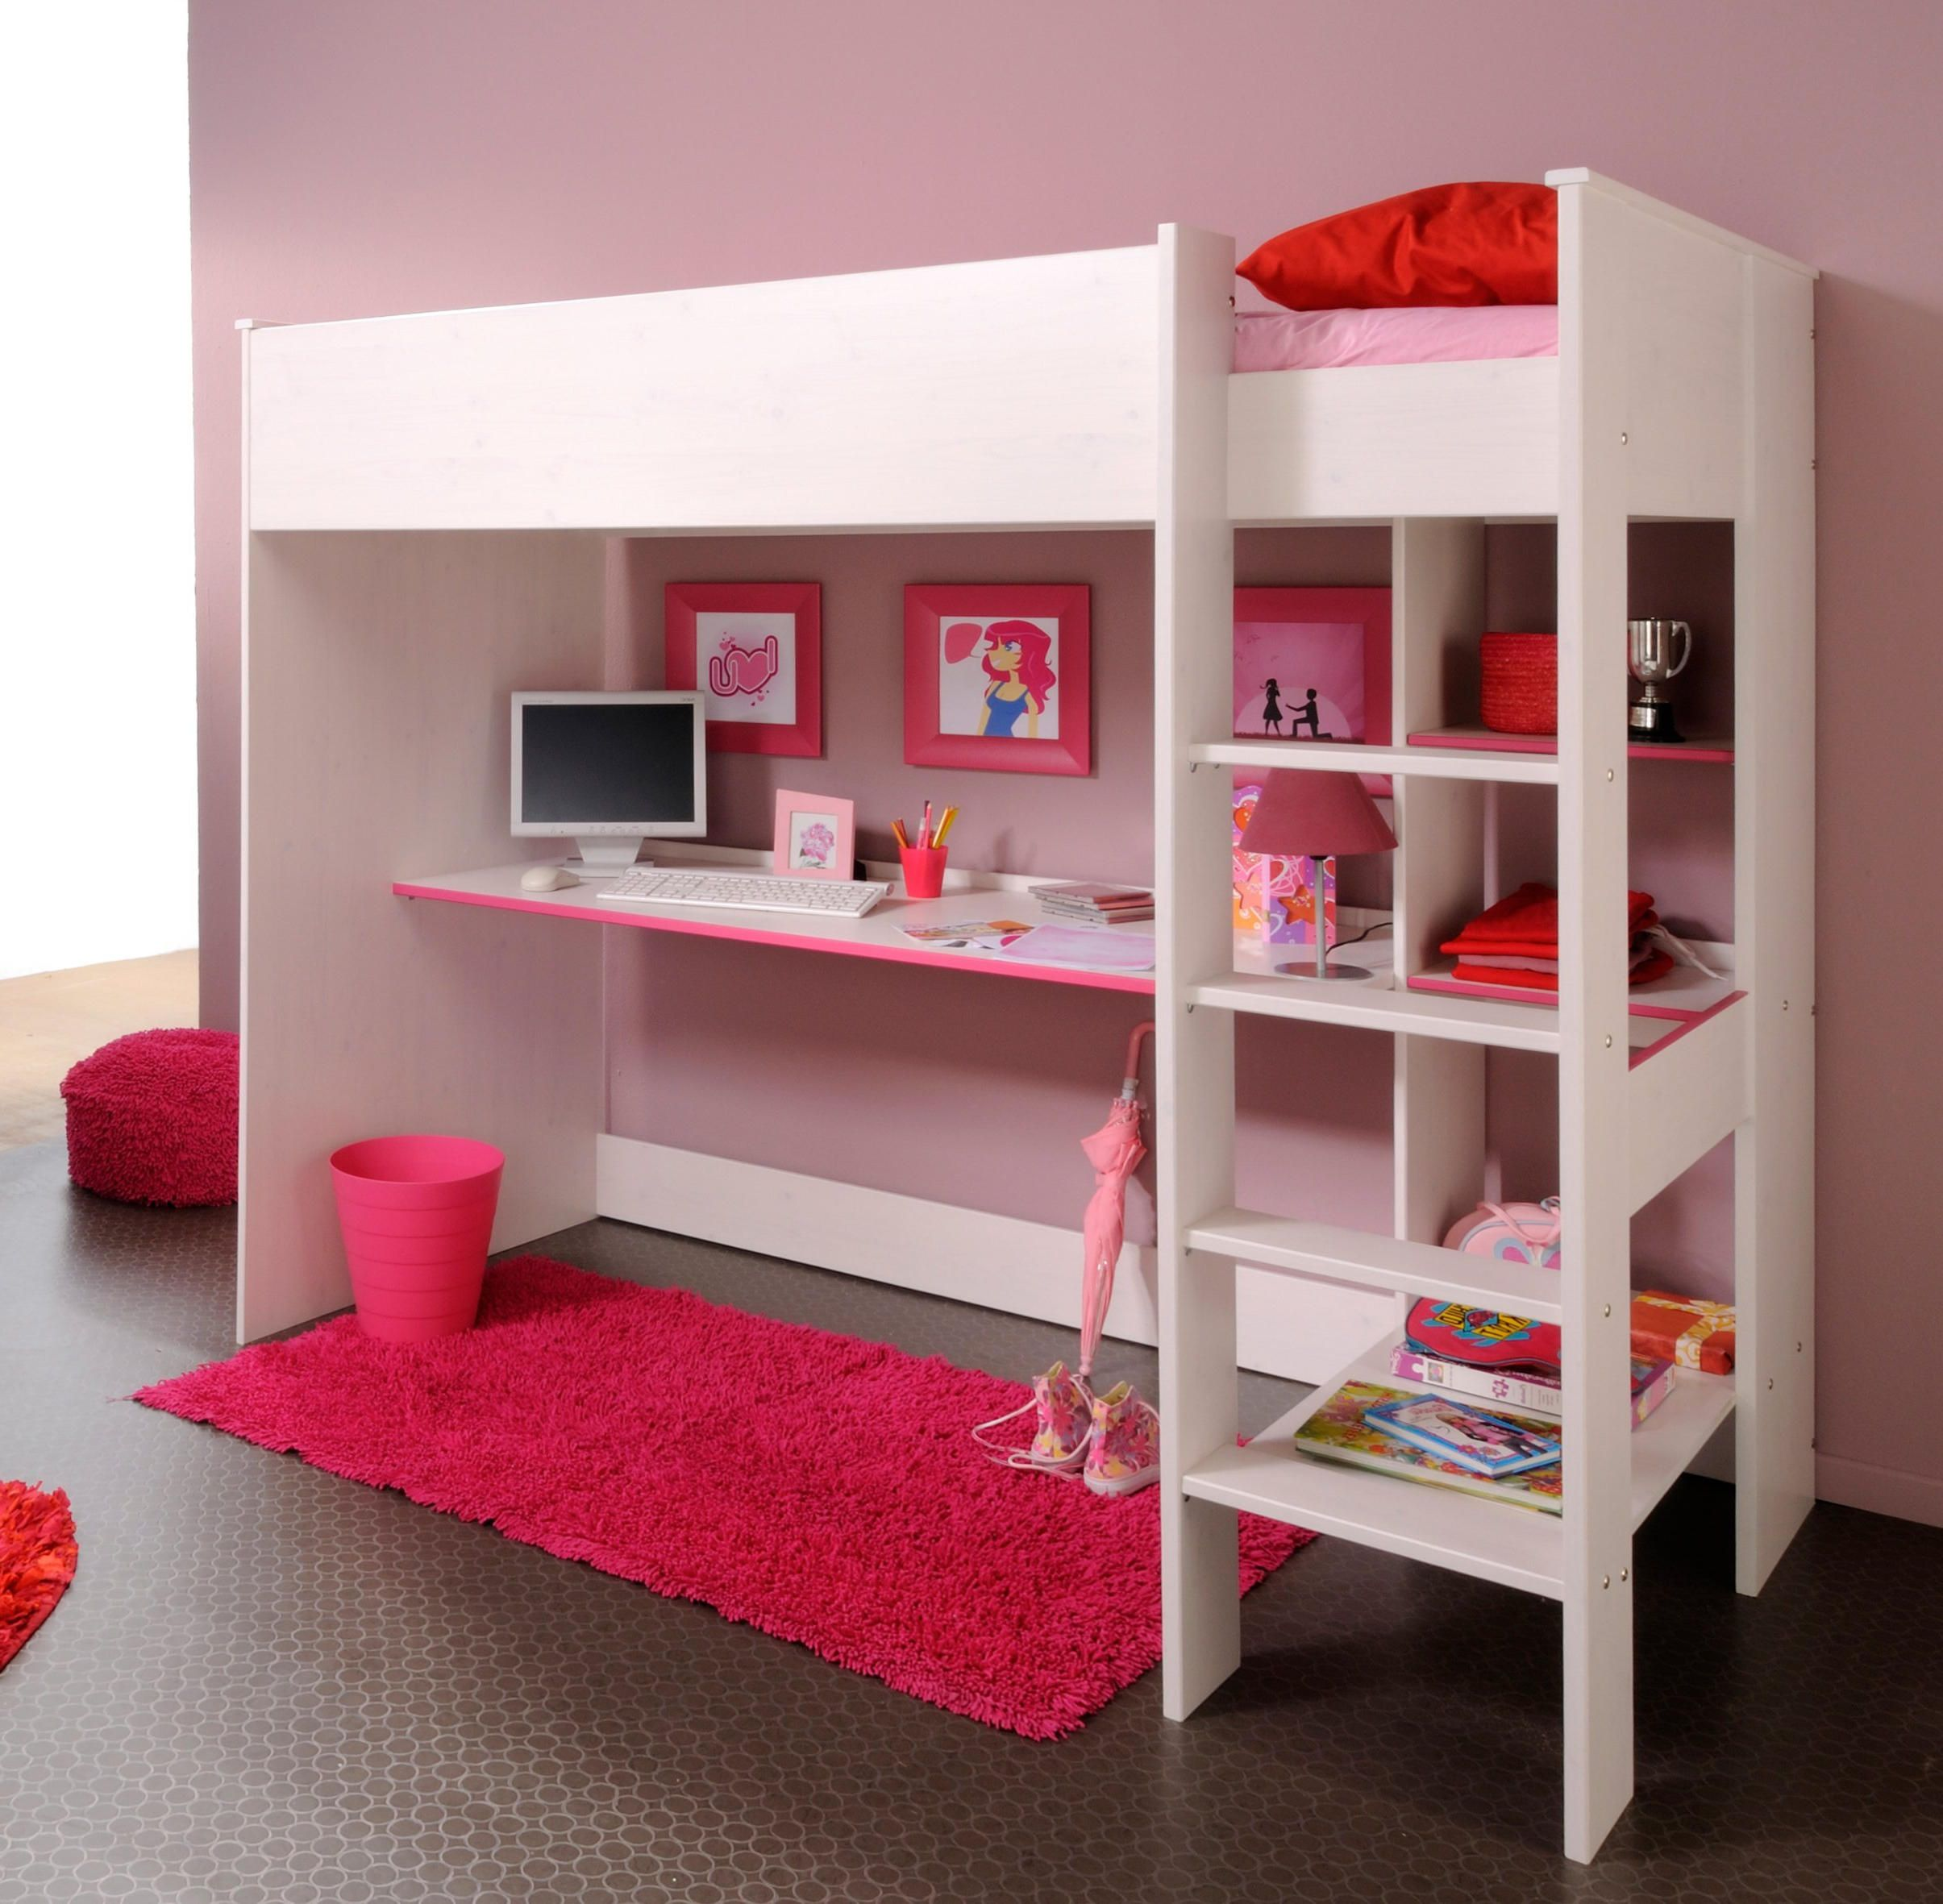 Twin Loft Bed With Desk And Storage Storage Underneath Silver Girls Bedroom Sets Bunk Bed With Desk Ikea Bunk Bed